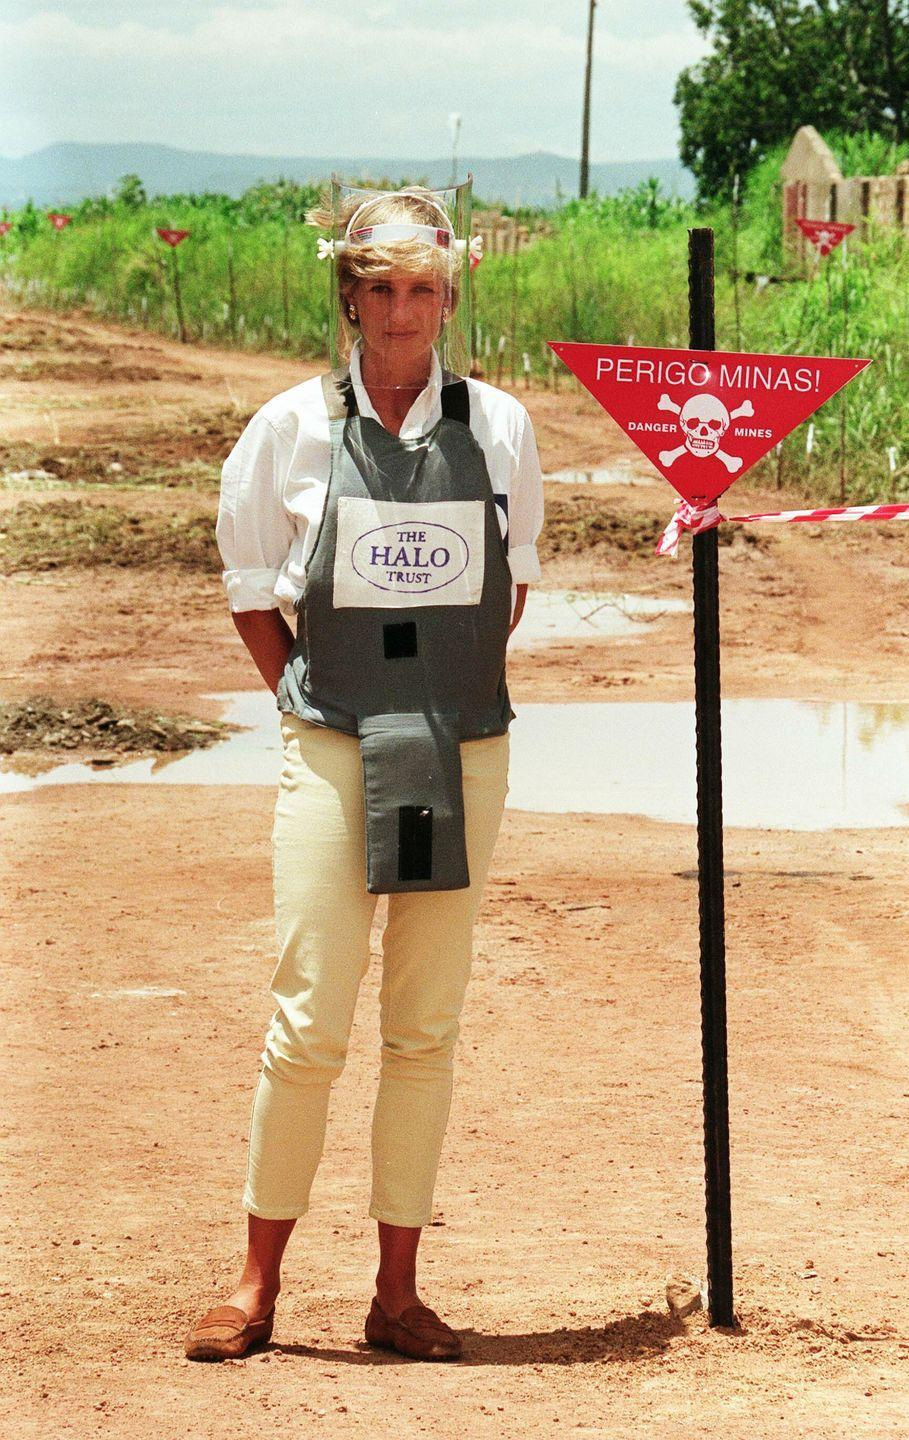 """<p>It wasn't the outfit that caused controversy in Angola, but rather the body armor Princess Diana wore to demonstrate the dangerous landmines across the nation's countryside. Although the princess' work with The Halo Trust is now praised, at the time many <a href=""""https://www.townandcountrymag.com/society/tradition/a12021518/princess-diana-landmines/"""" rel=""""nofollow noopener"""" target=""""_blank"""" data-ylk=""""slk:criticized her for taking a political stance"""" class=""""link rapid-noclick-resp"""">criticized her for taking a political stance</a> as a royal. </p>"""